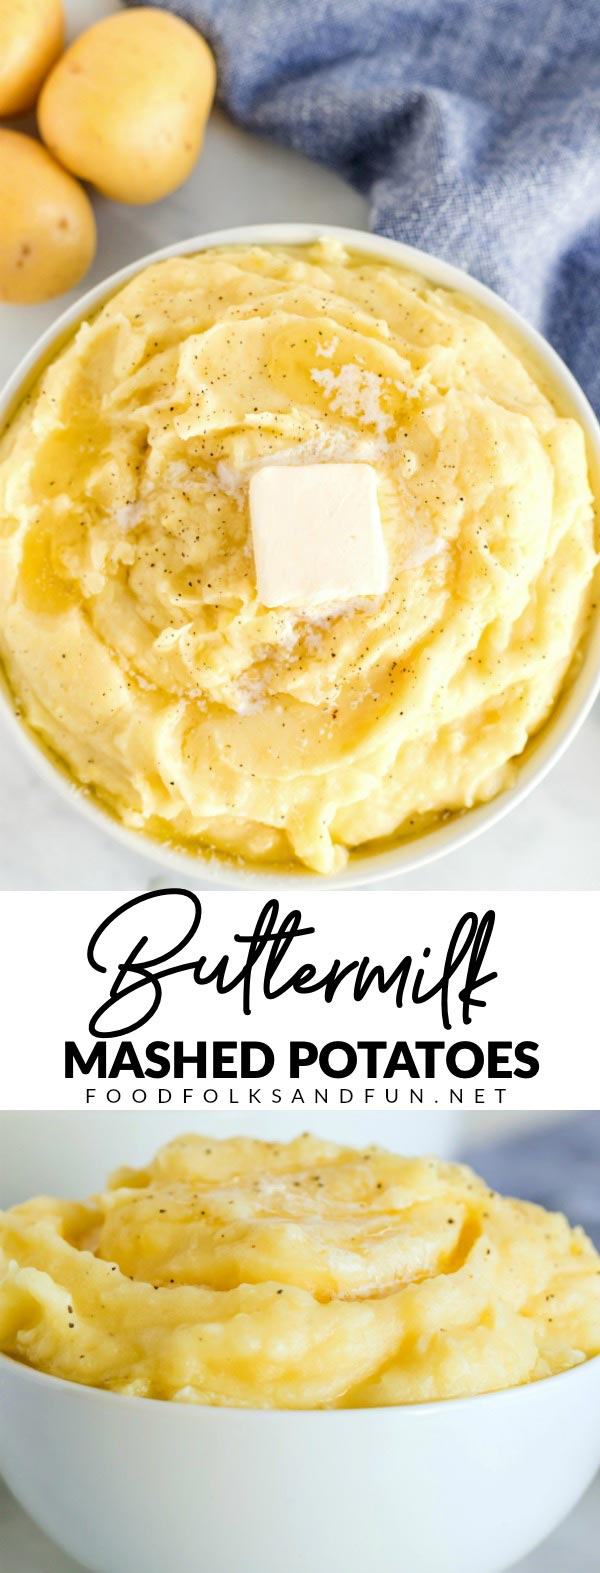 This Buttermilk Mashed Potatoes recipe is a quick and easy Thanksgiving side dish. The buttermilk makes these potatoes creamy, a little tangy, and so irresistible!  via @foodfolksandfun